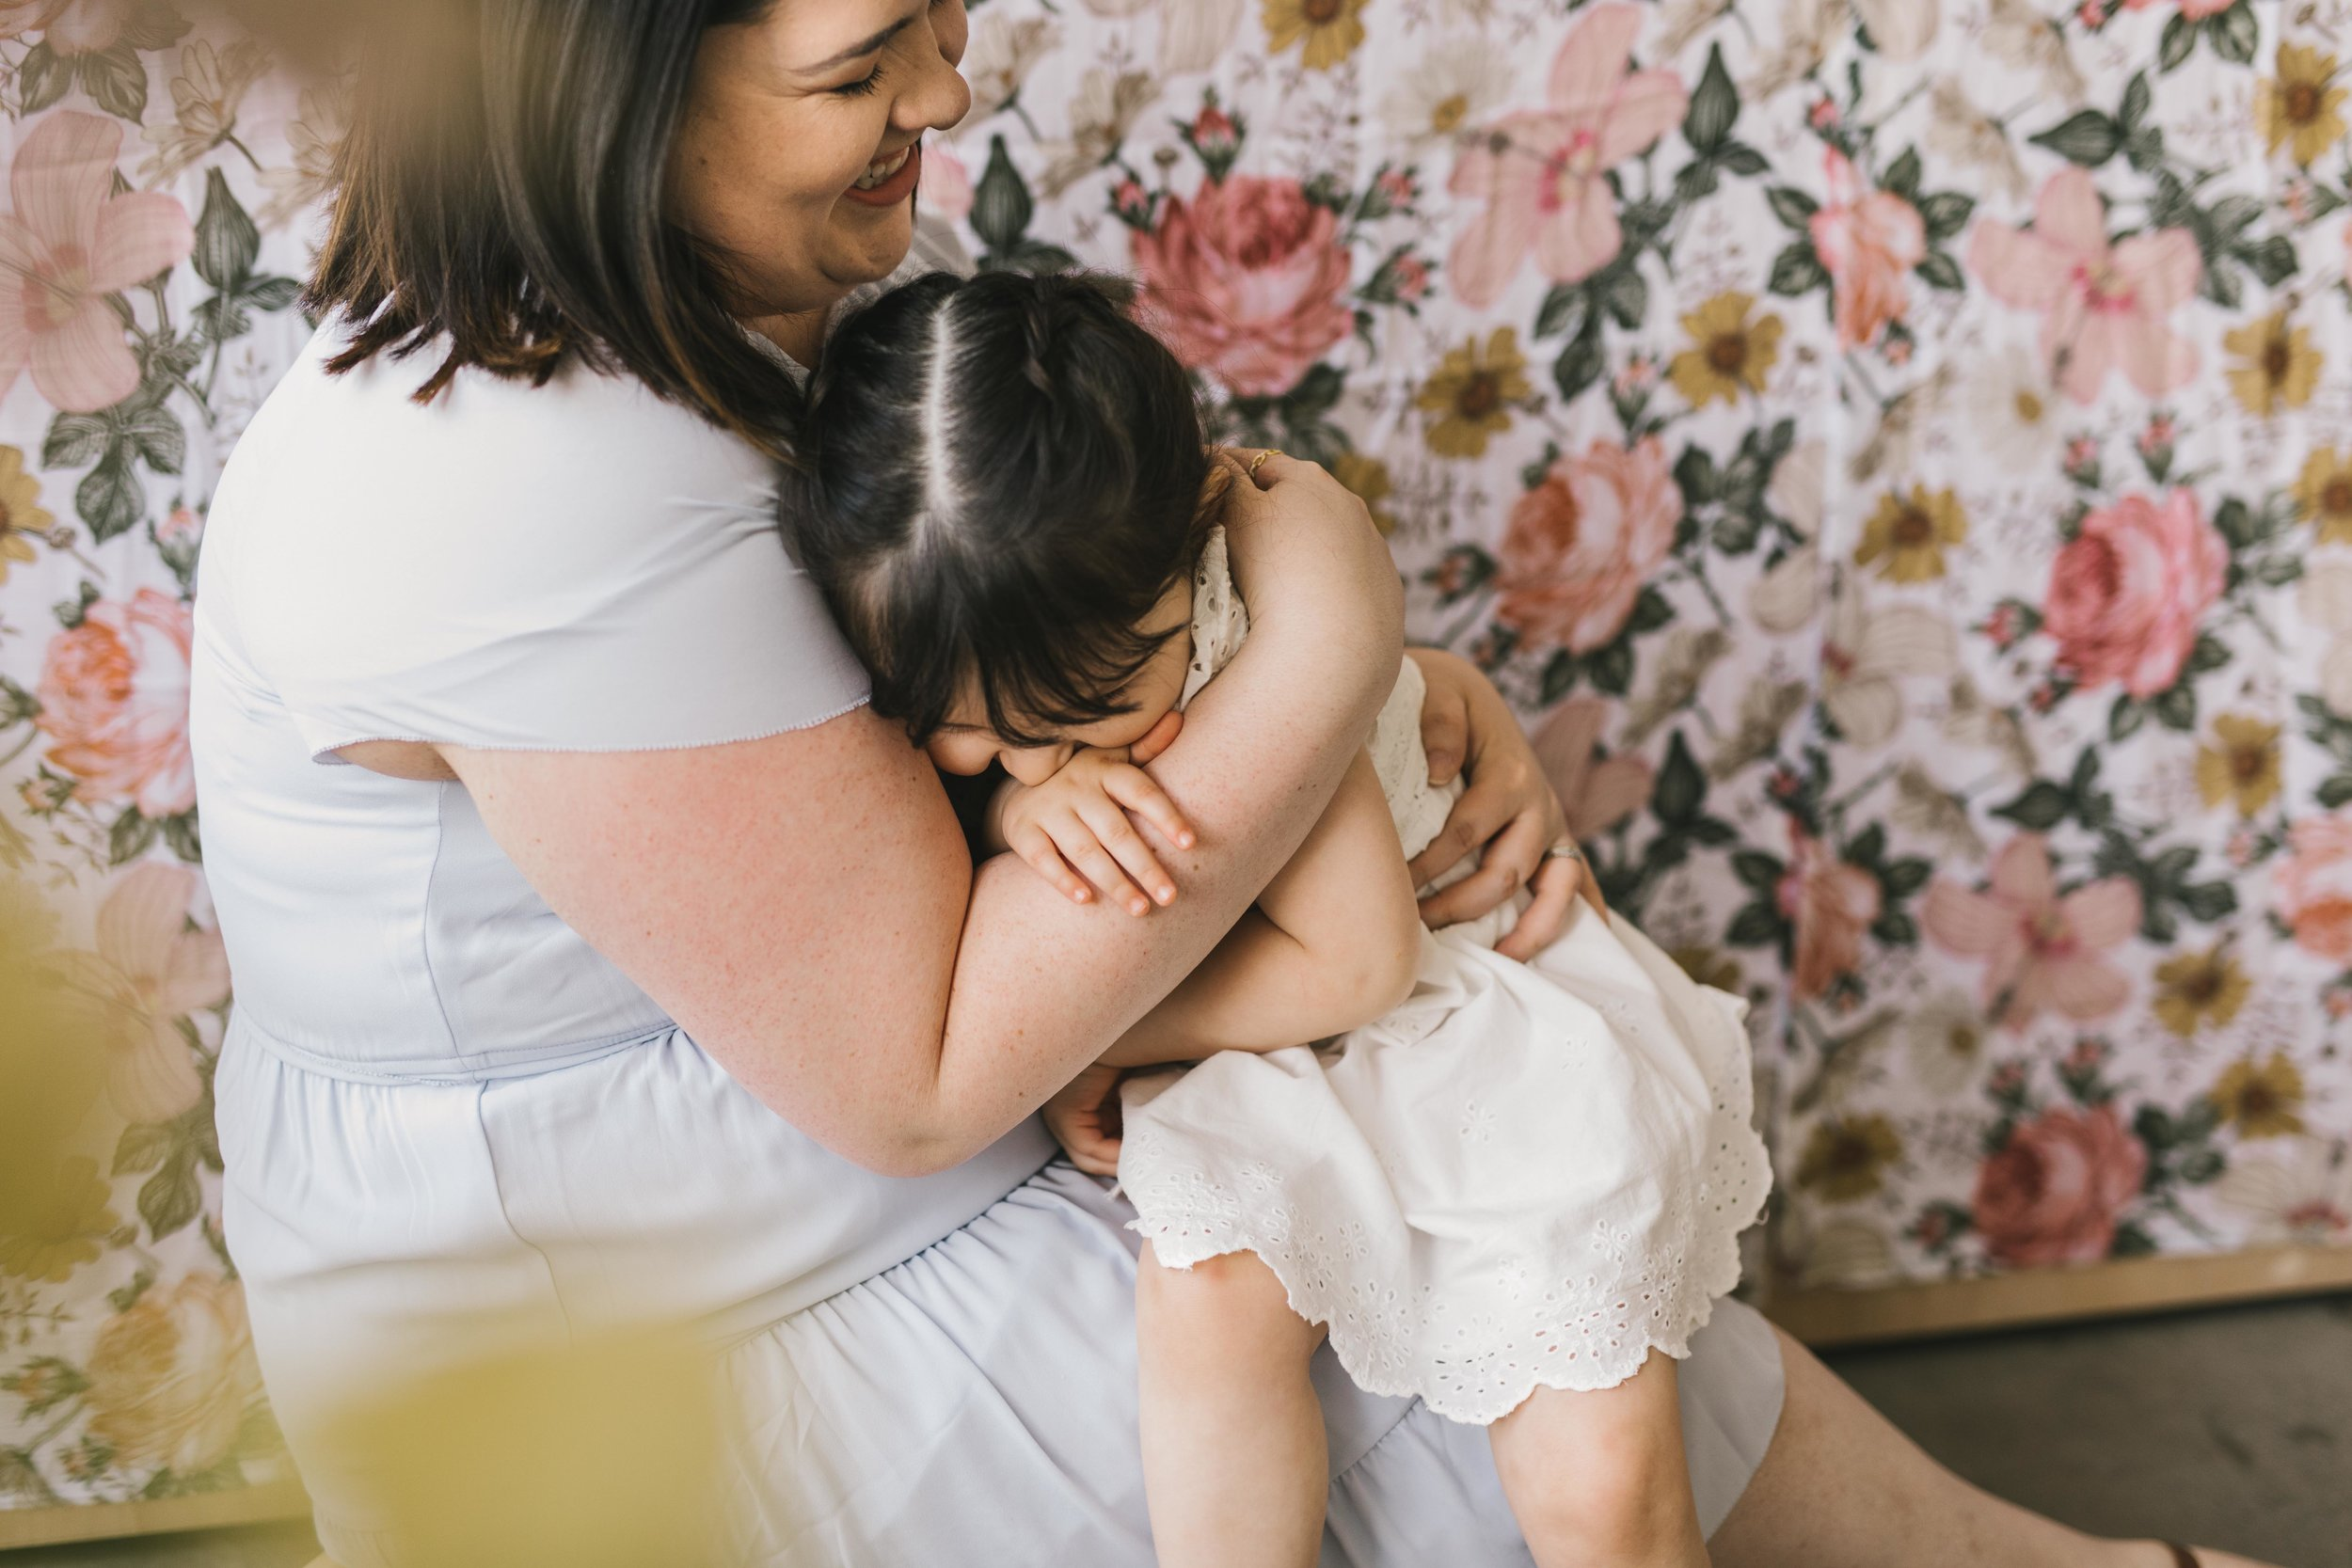 Strong beautiful mother and daughter session in a seattle studio with chelsea macor photography #seattlemotherhoodphotographer #seattlefamilyphotographer #seattlematernityphotographer